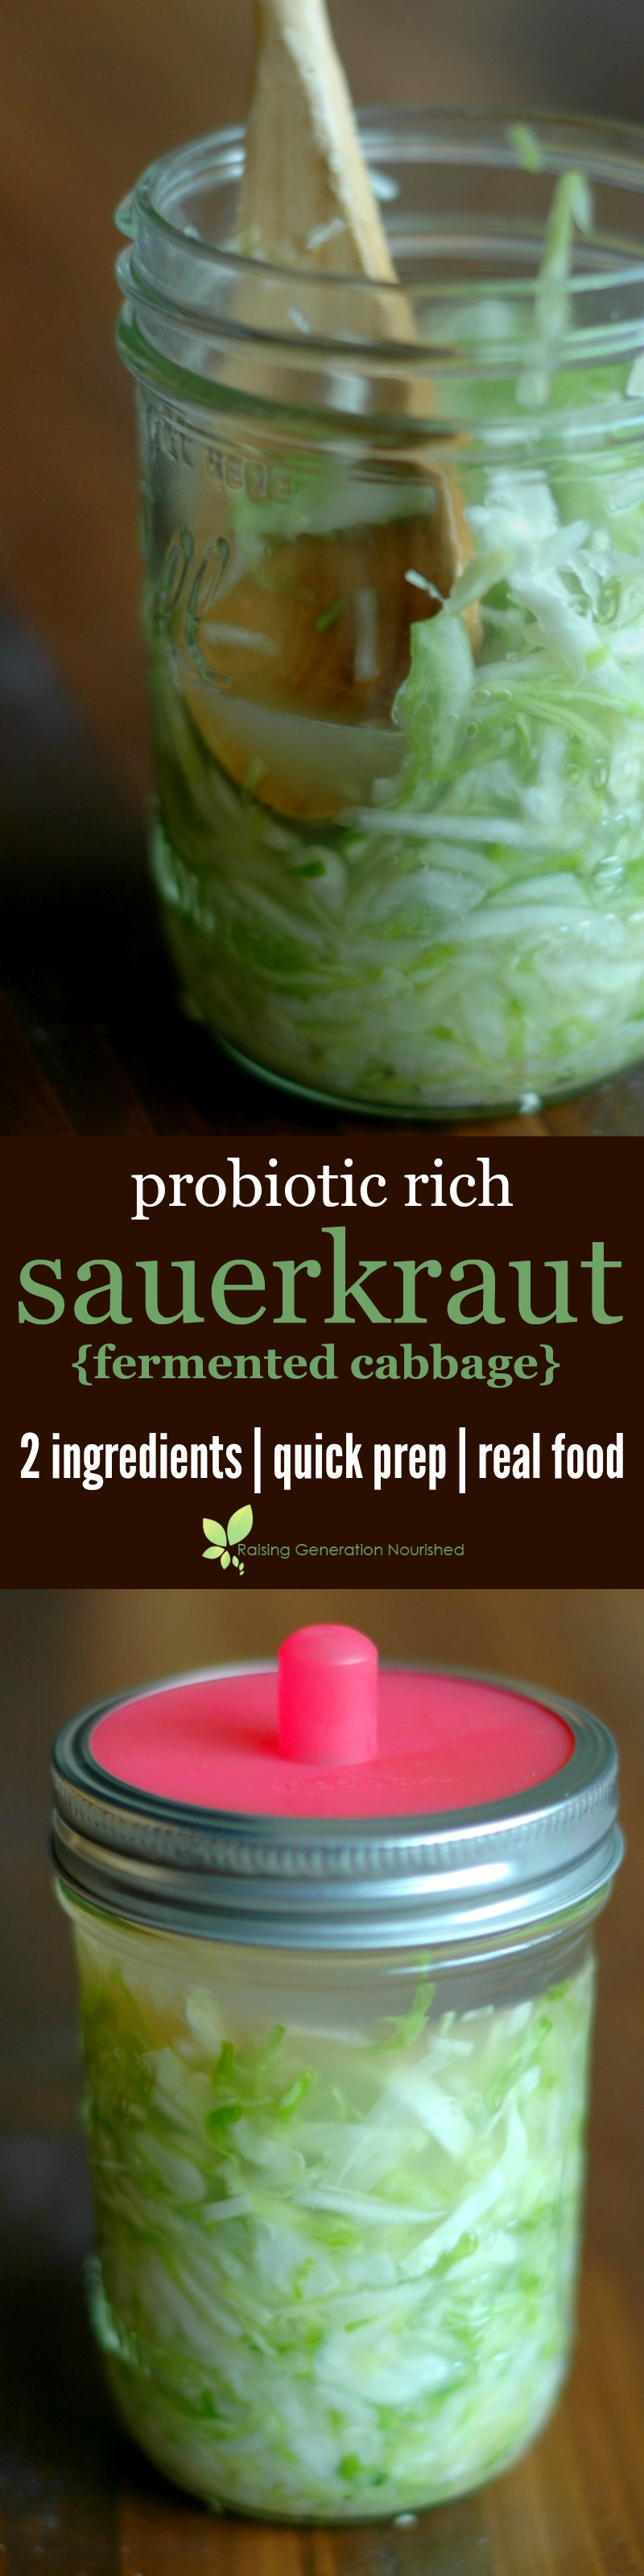 Homemade sauerkraut is the simplest way to populate your gut with a variety of nourishing probiotics for robust gut health and immune systems!